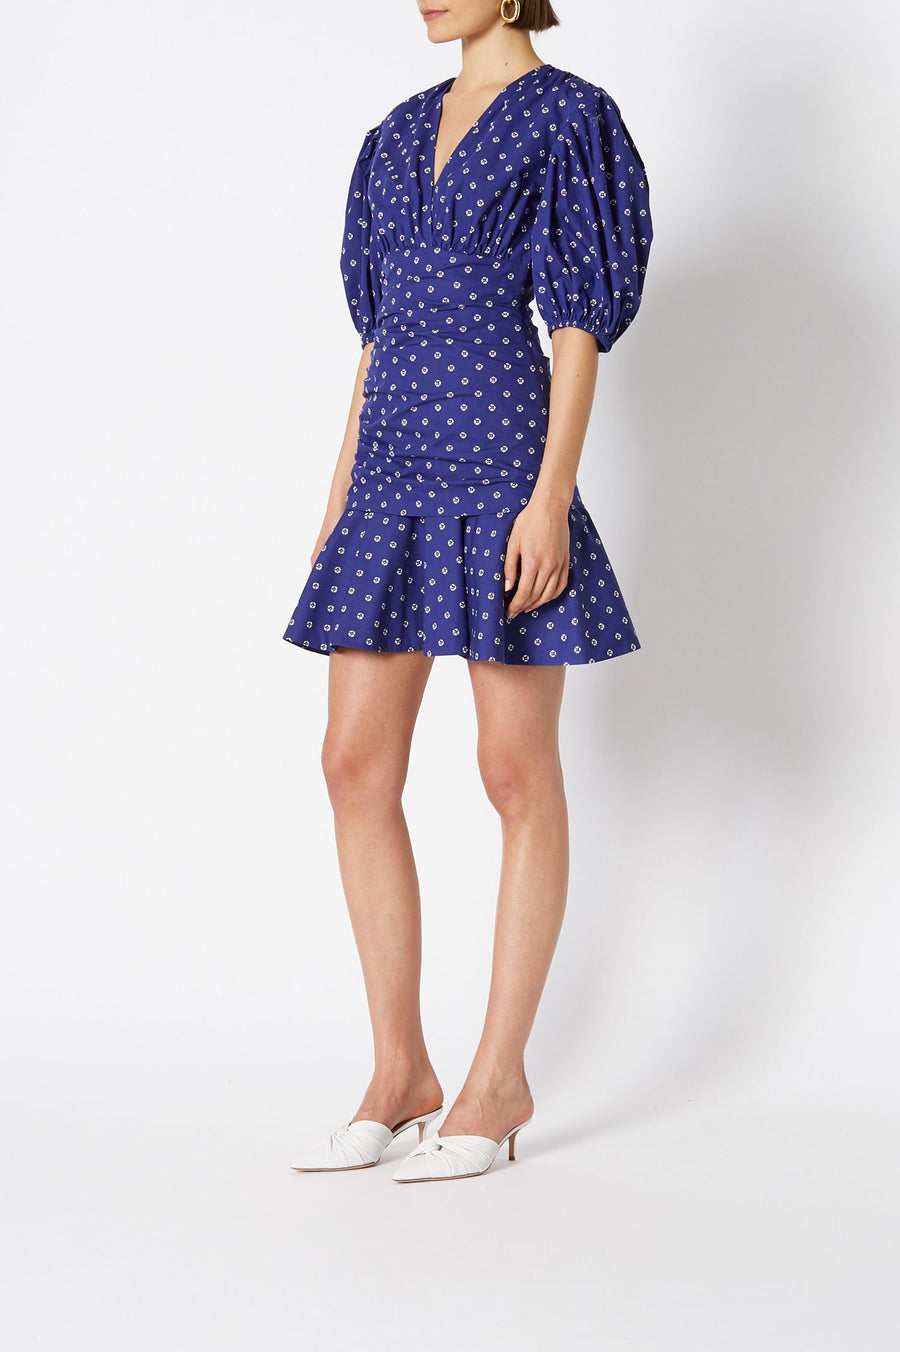 BANDANA PRINT COTTON DRESS, V NECK, FALLS ABOVE KNEE, COLOR BLUE